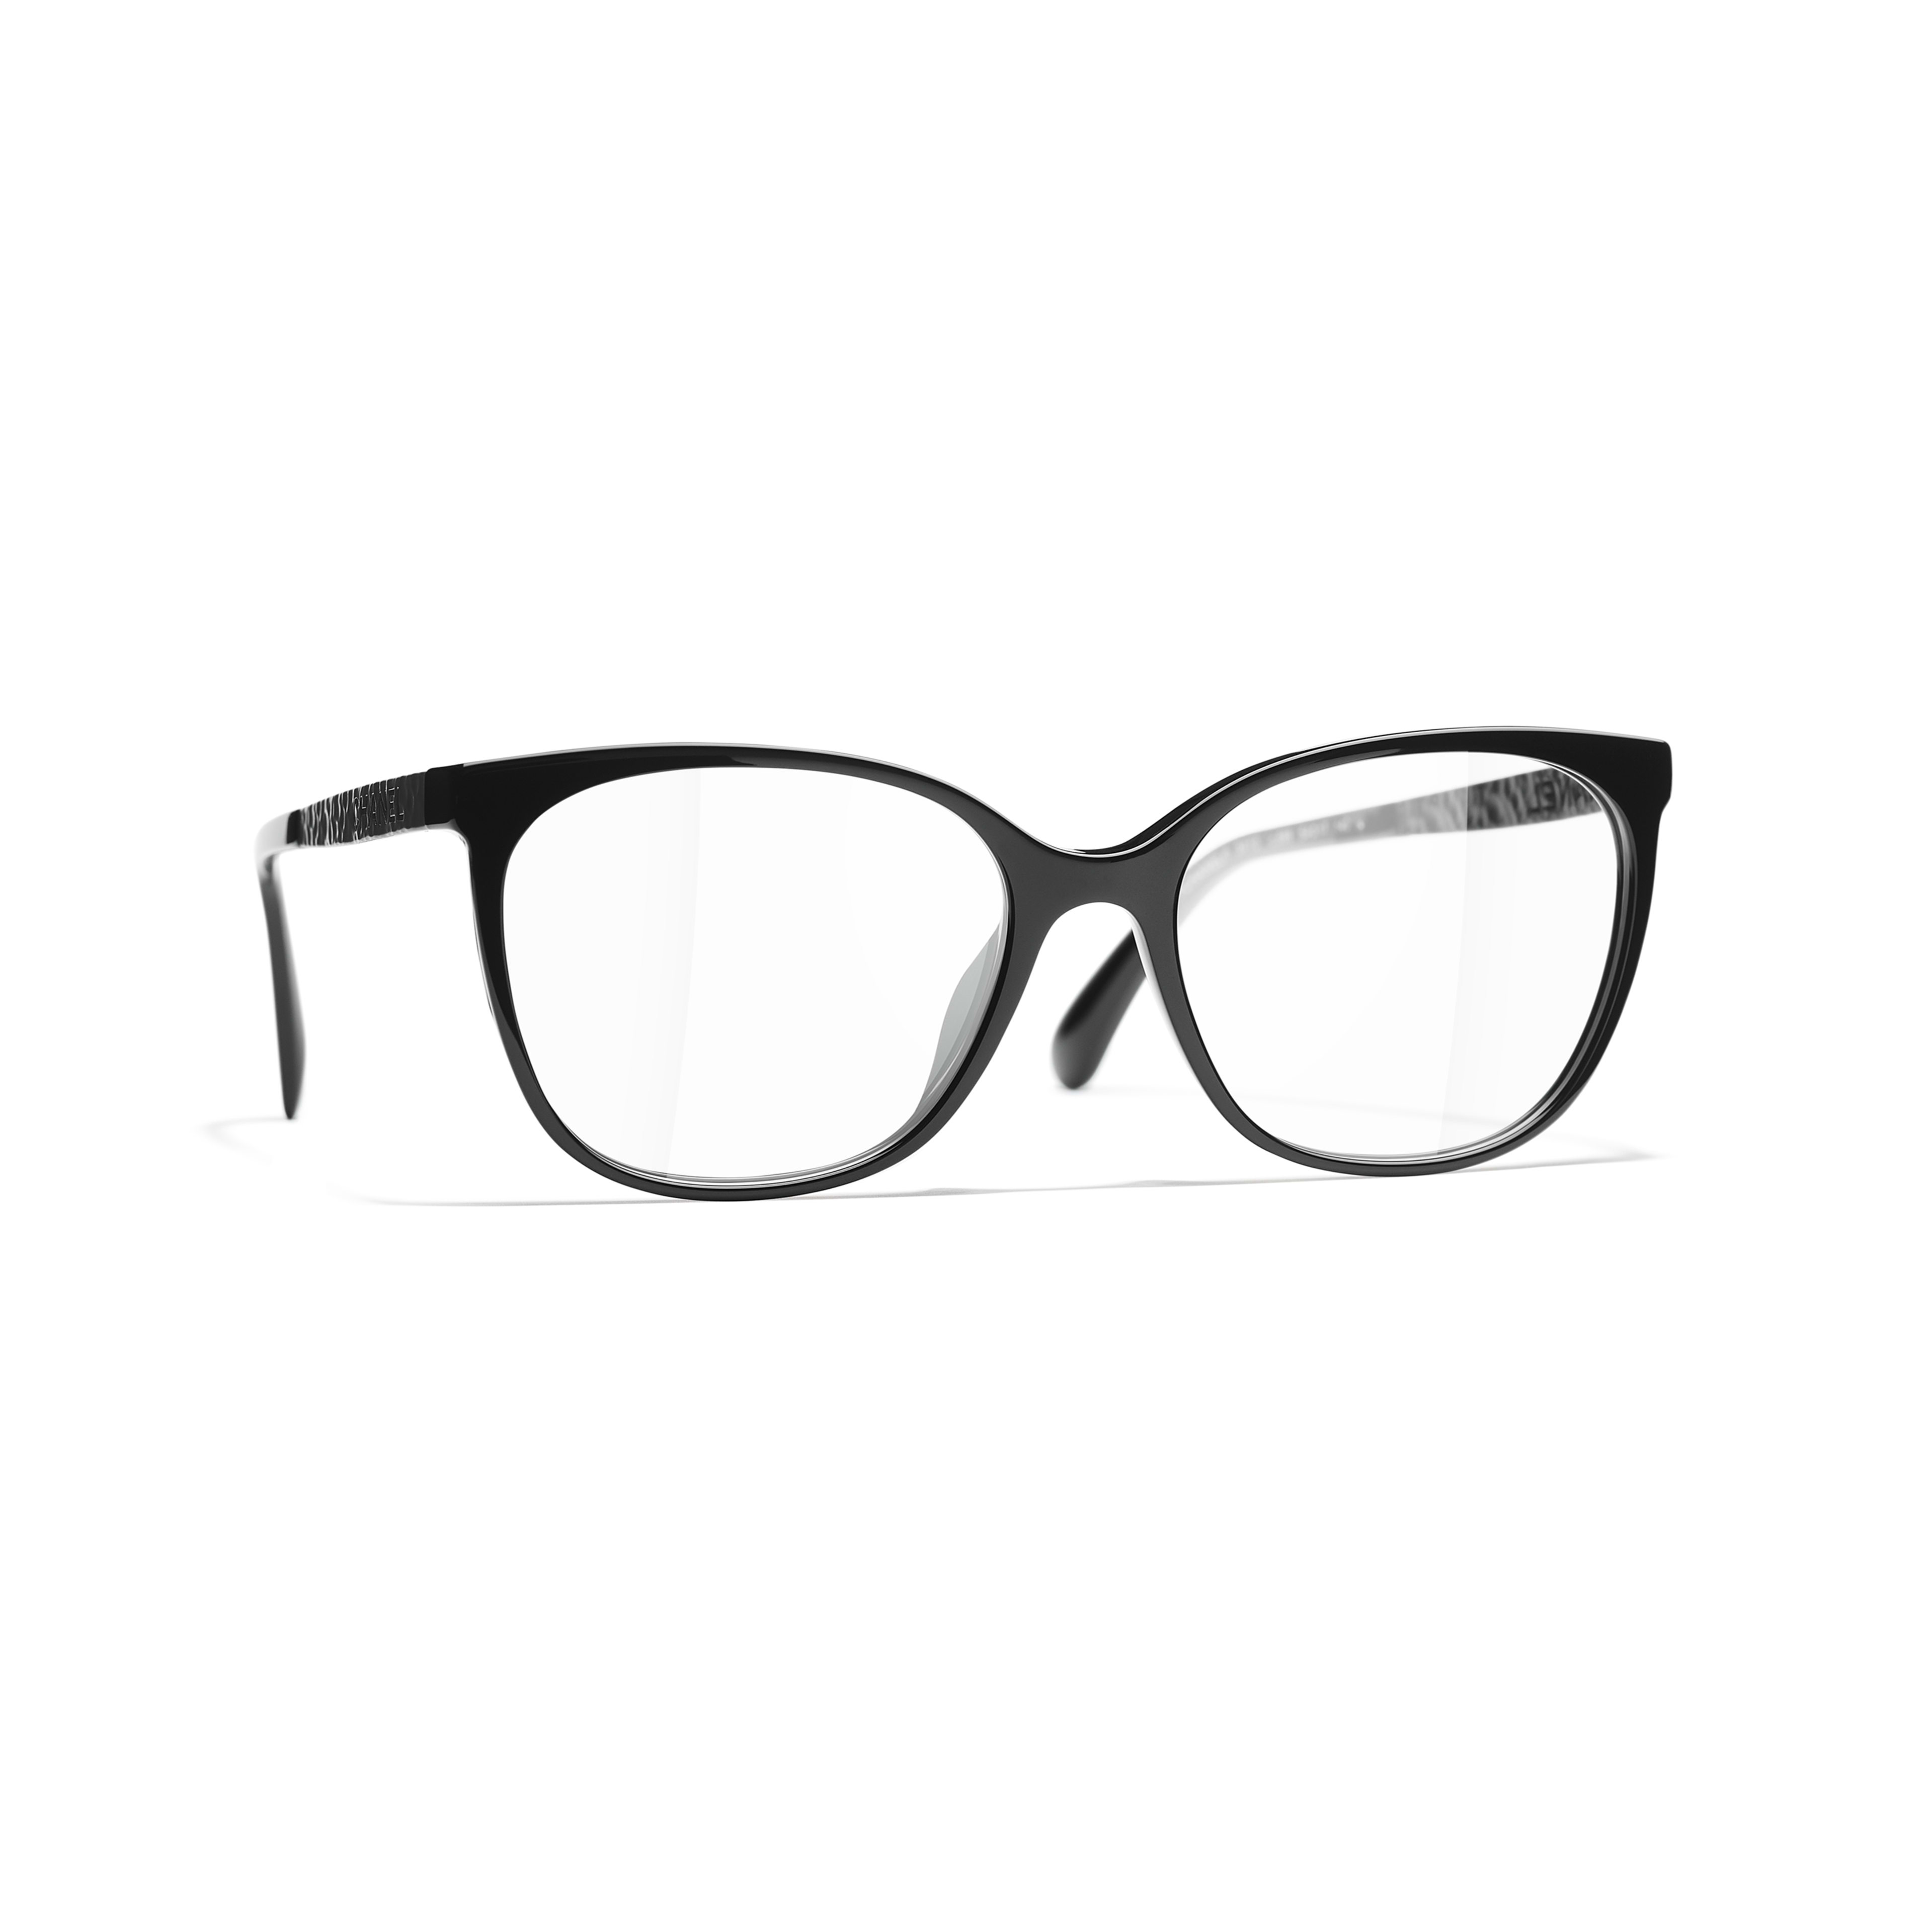 Square Eyeglasses - Black - Acetate & Metal - CHANEL - Default view - see standard sized version